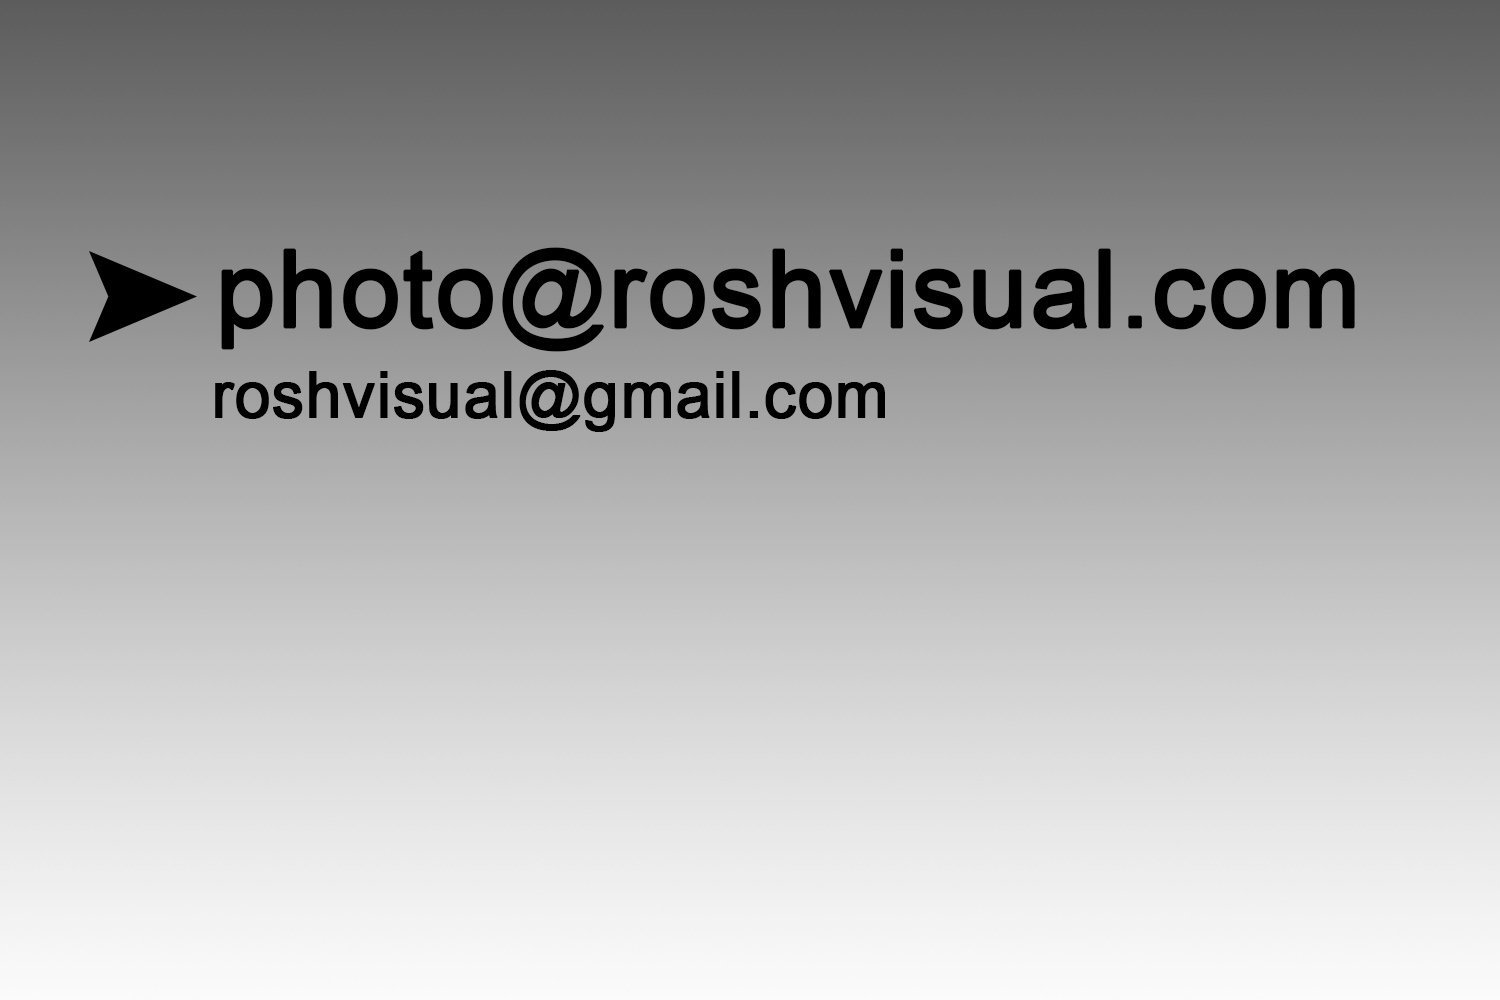 Roshvisual official email contact